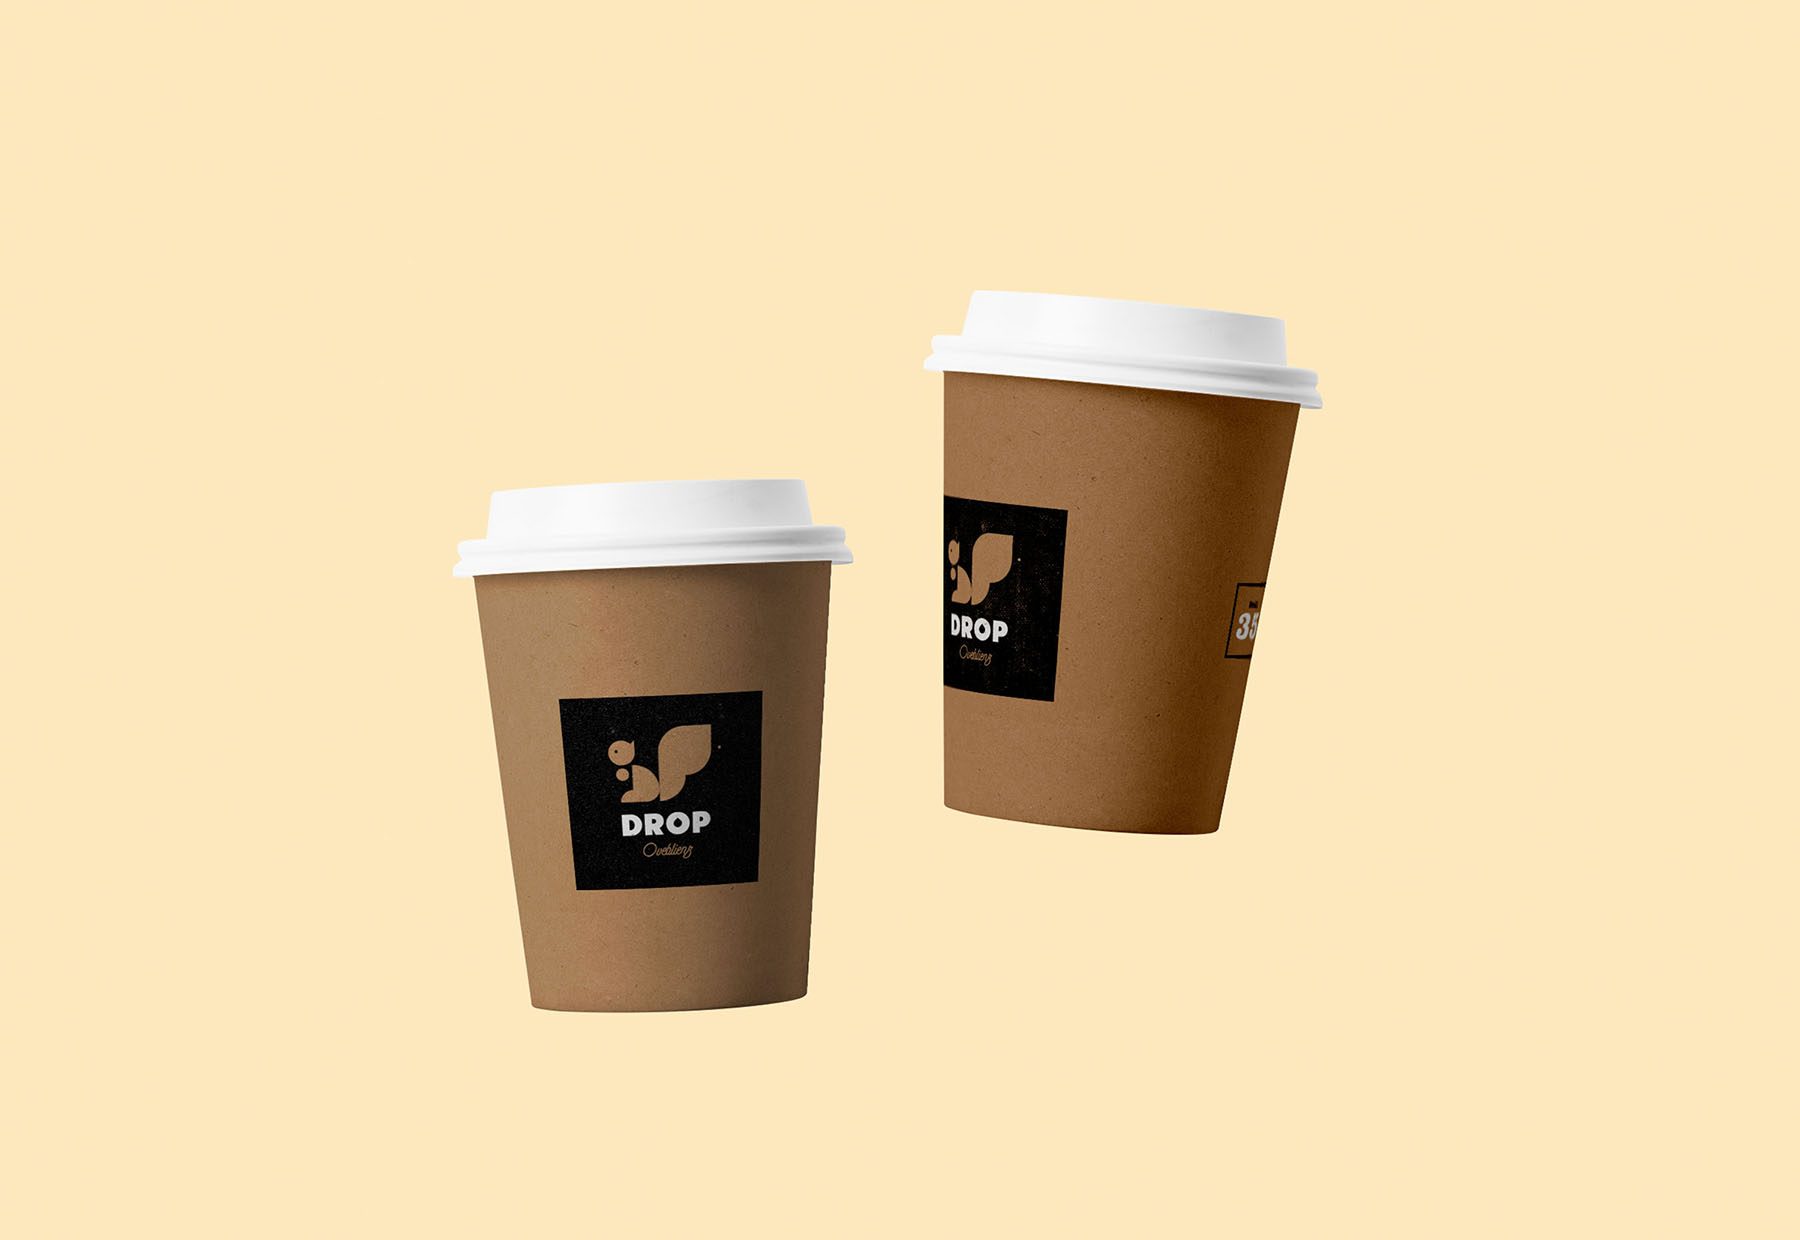 drop coffee branding graphic design of the cardboard drinking cups